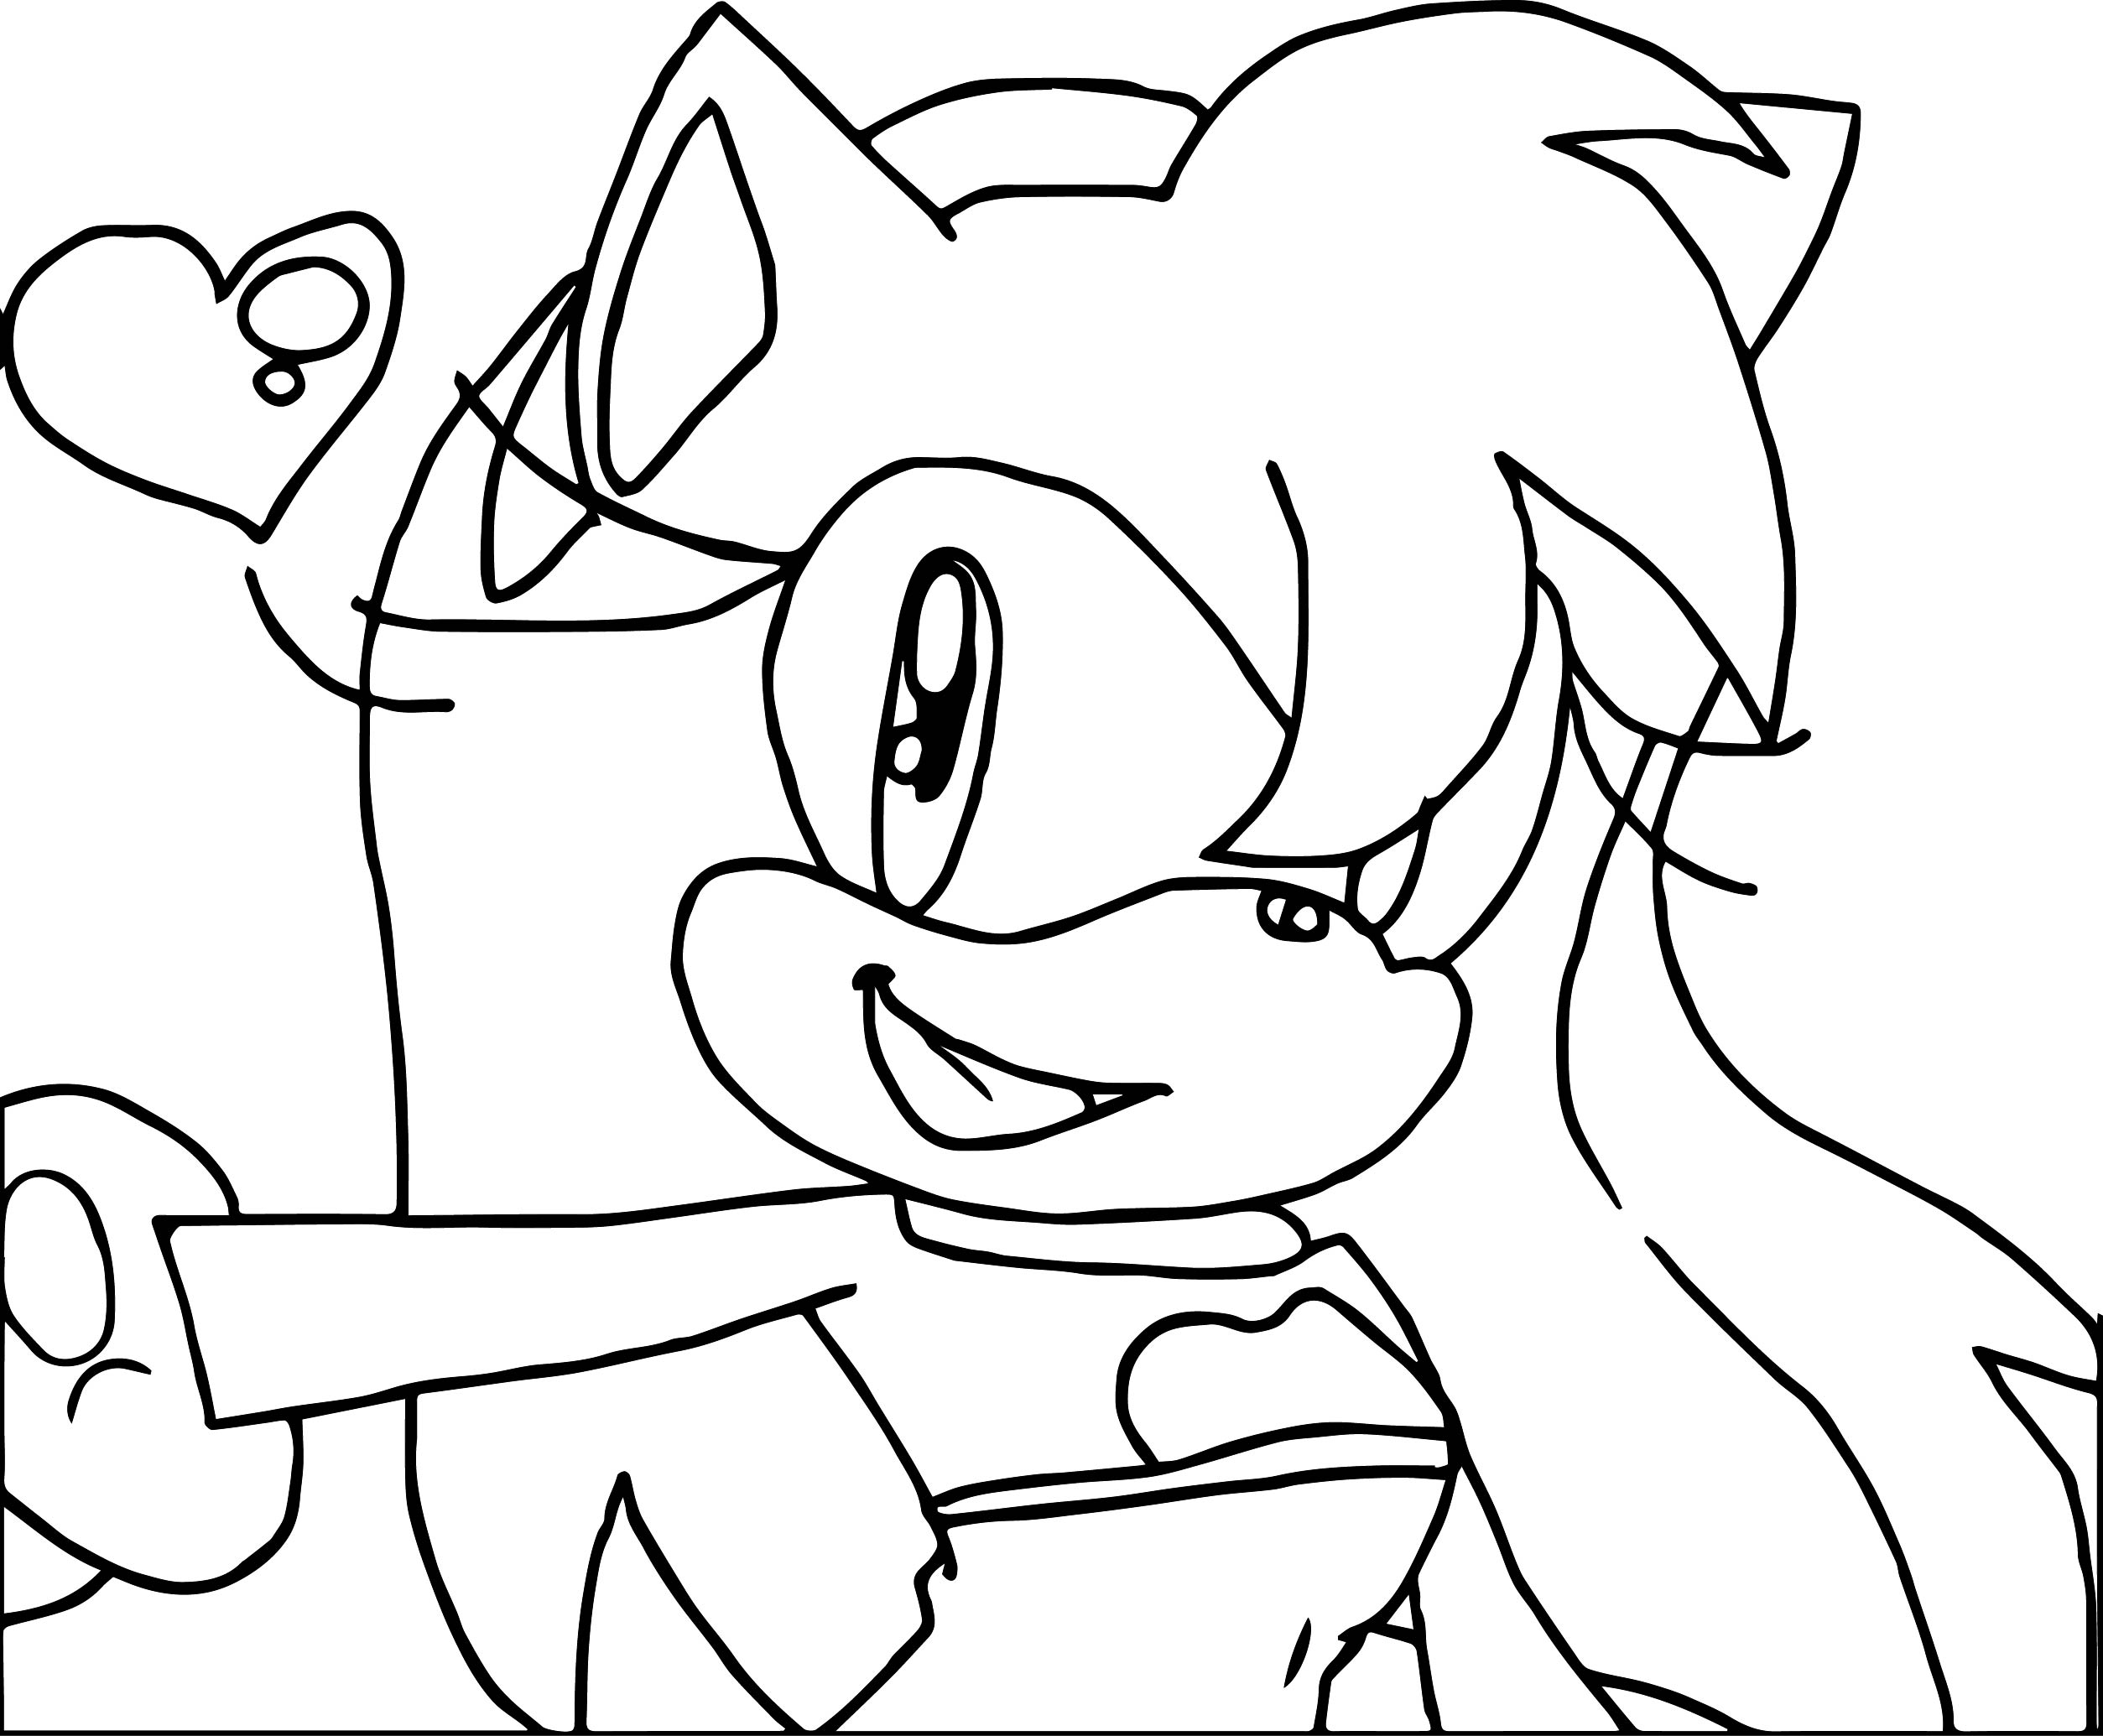 simple coloring pages - simple amy rose coloring page